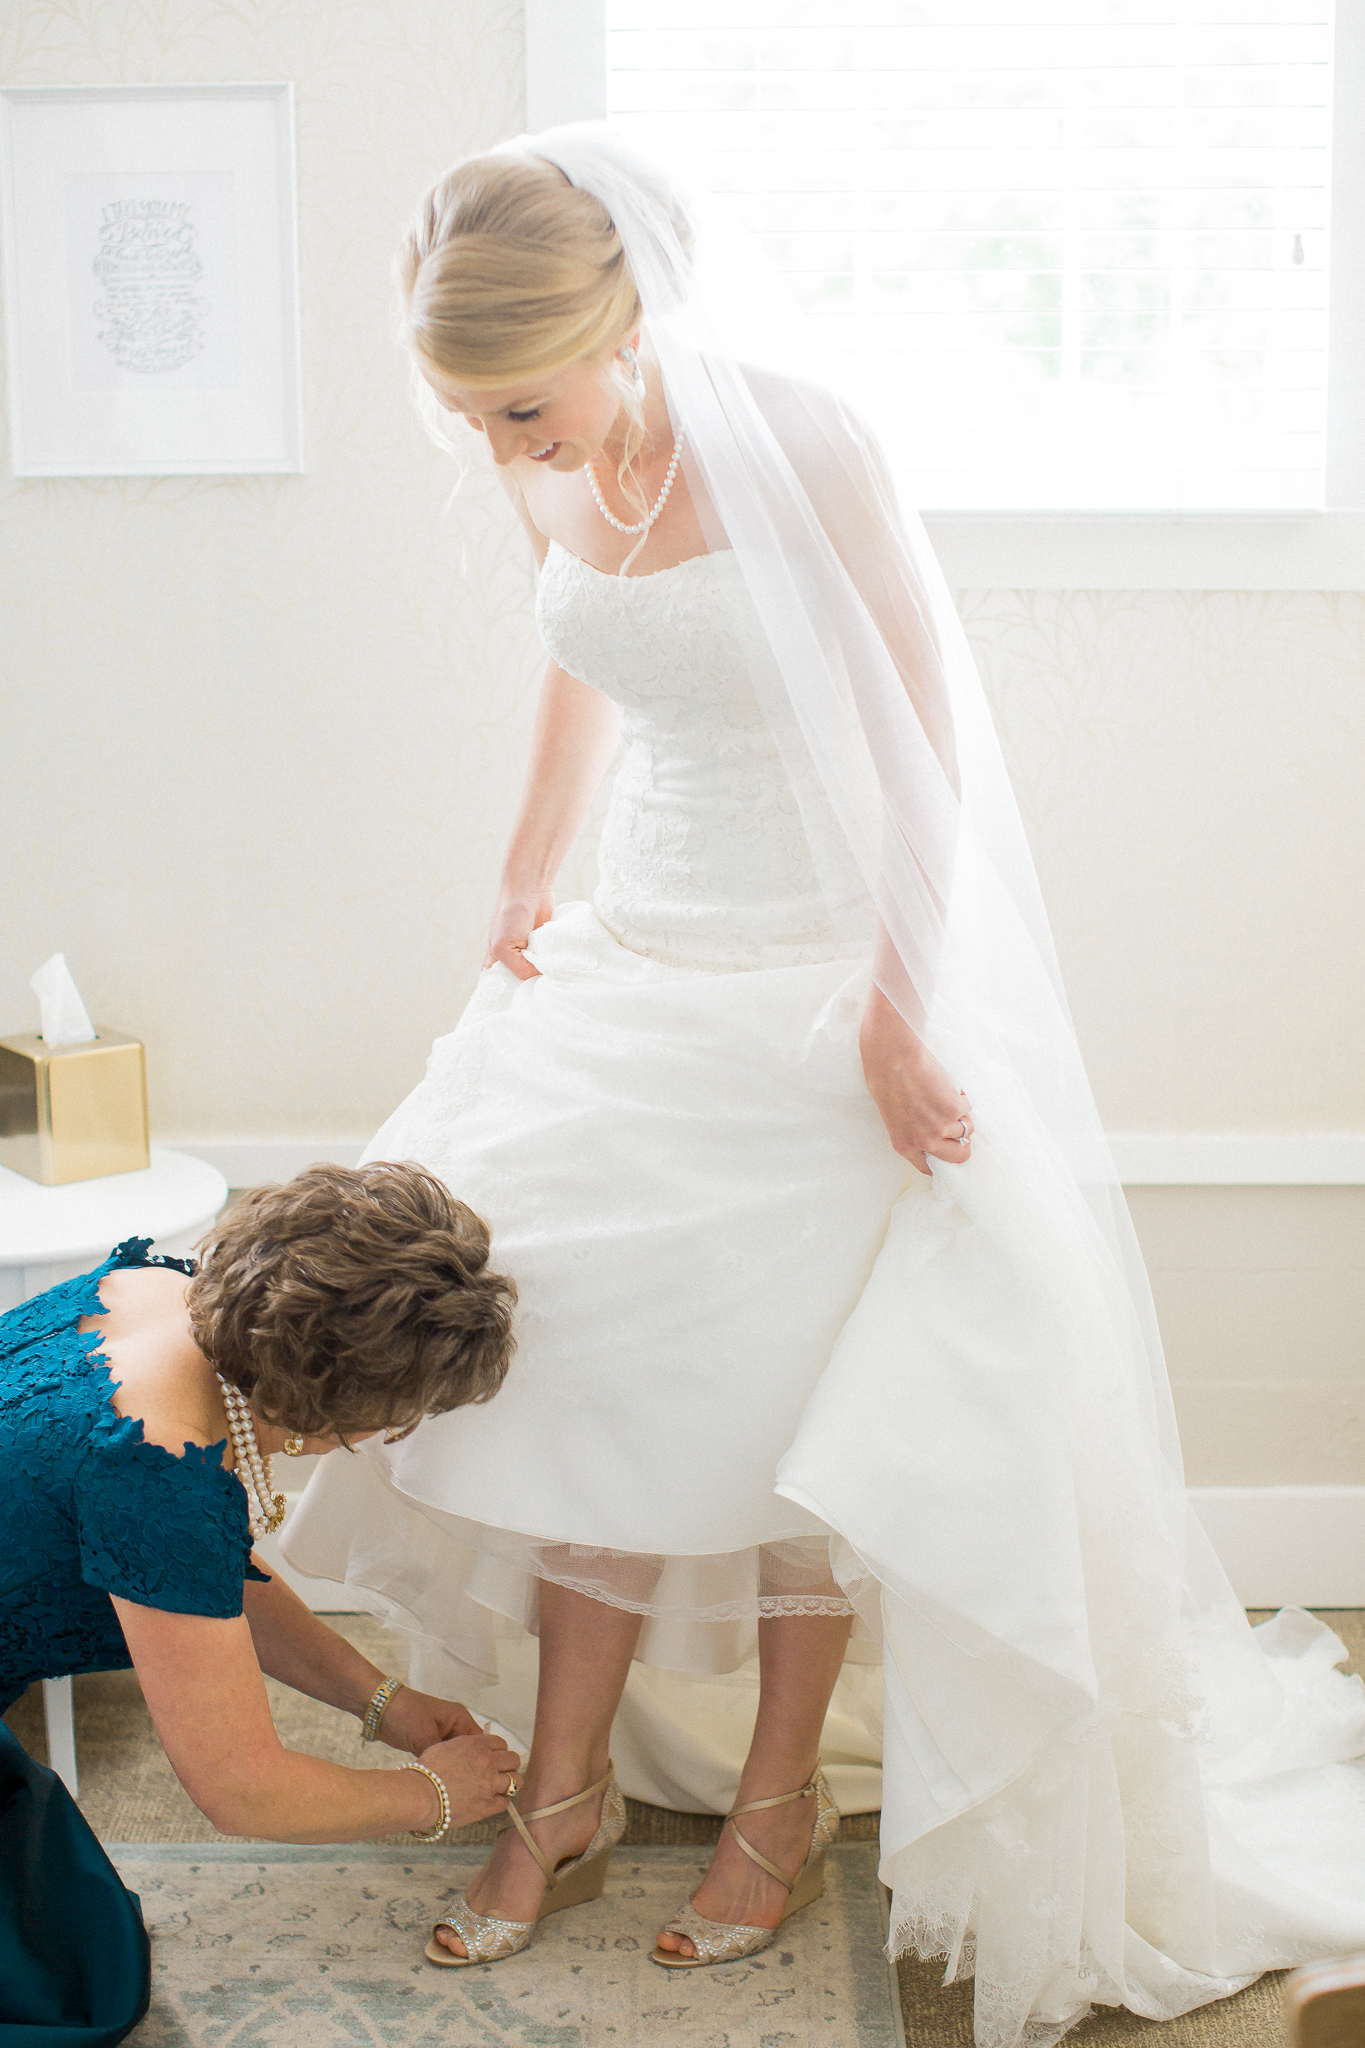 mom and daughter bride gets ready